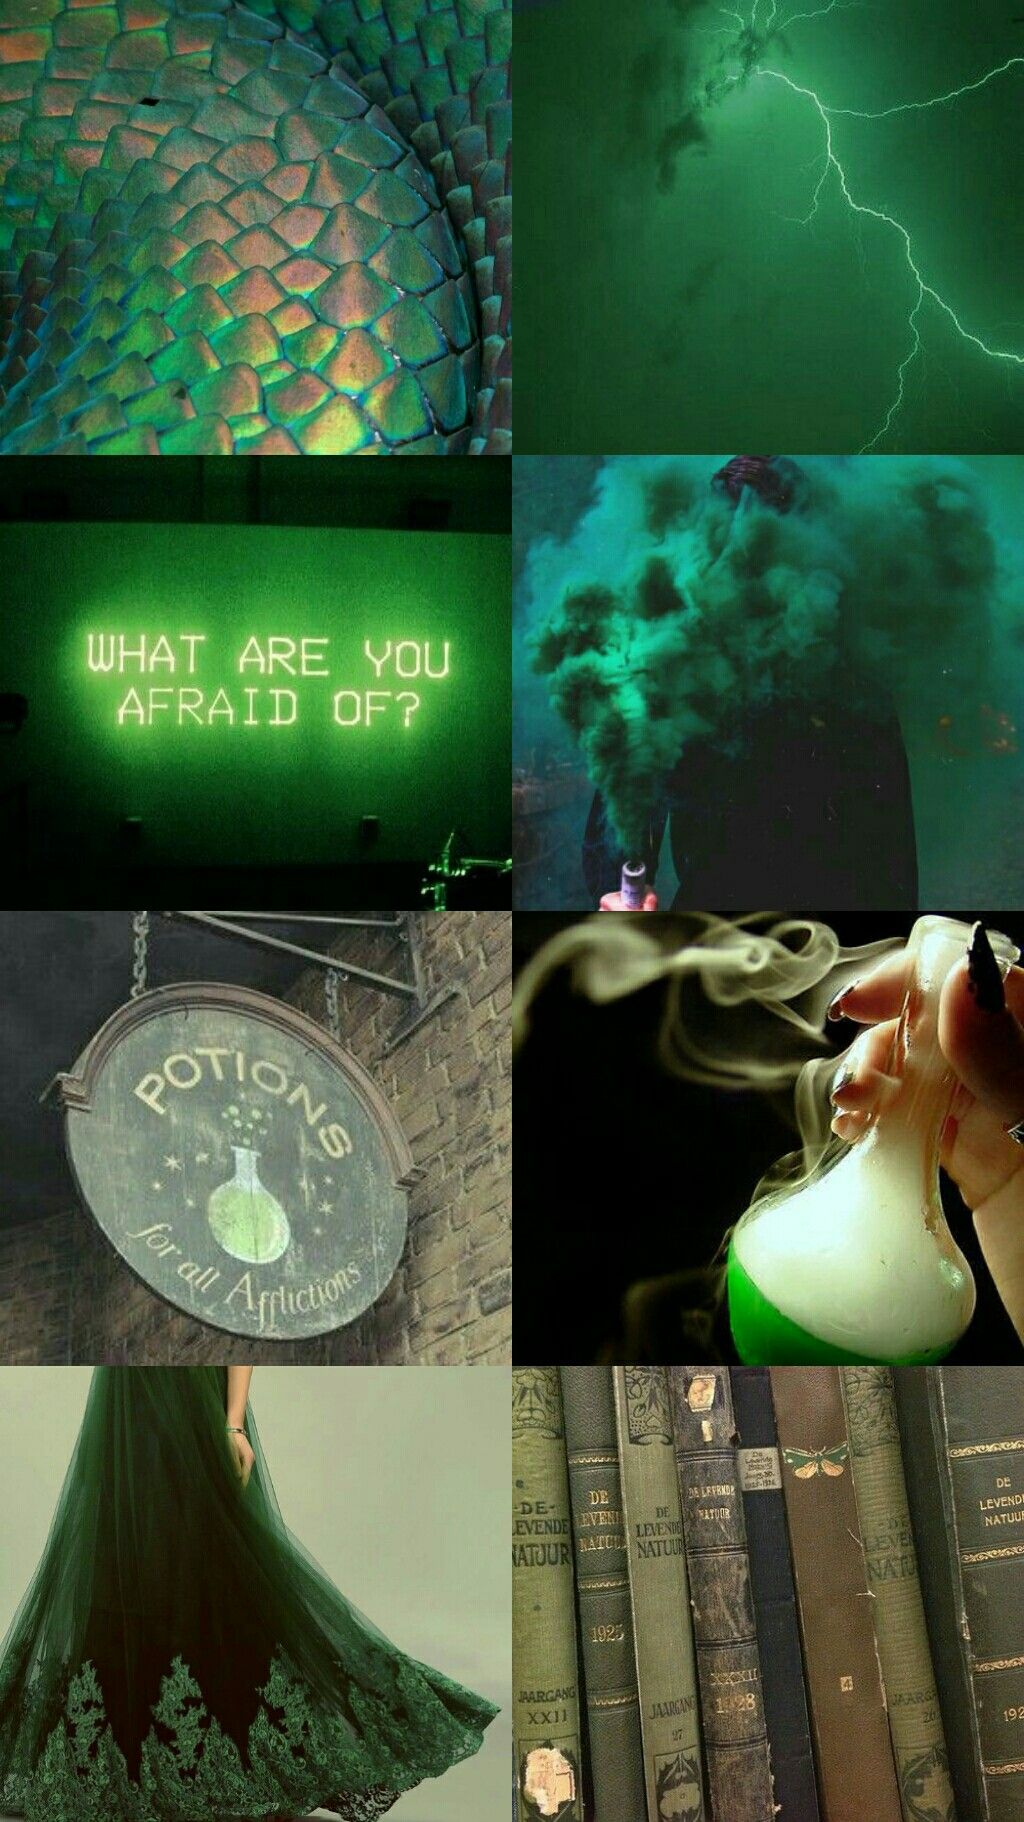 Slytherin aesthetics I'll be evil  I'll be bad  Why? You tell me I